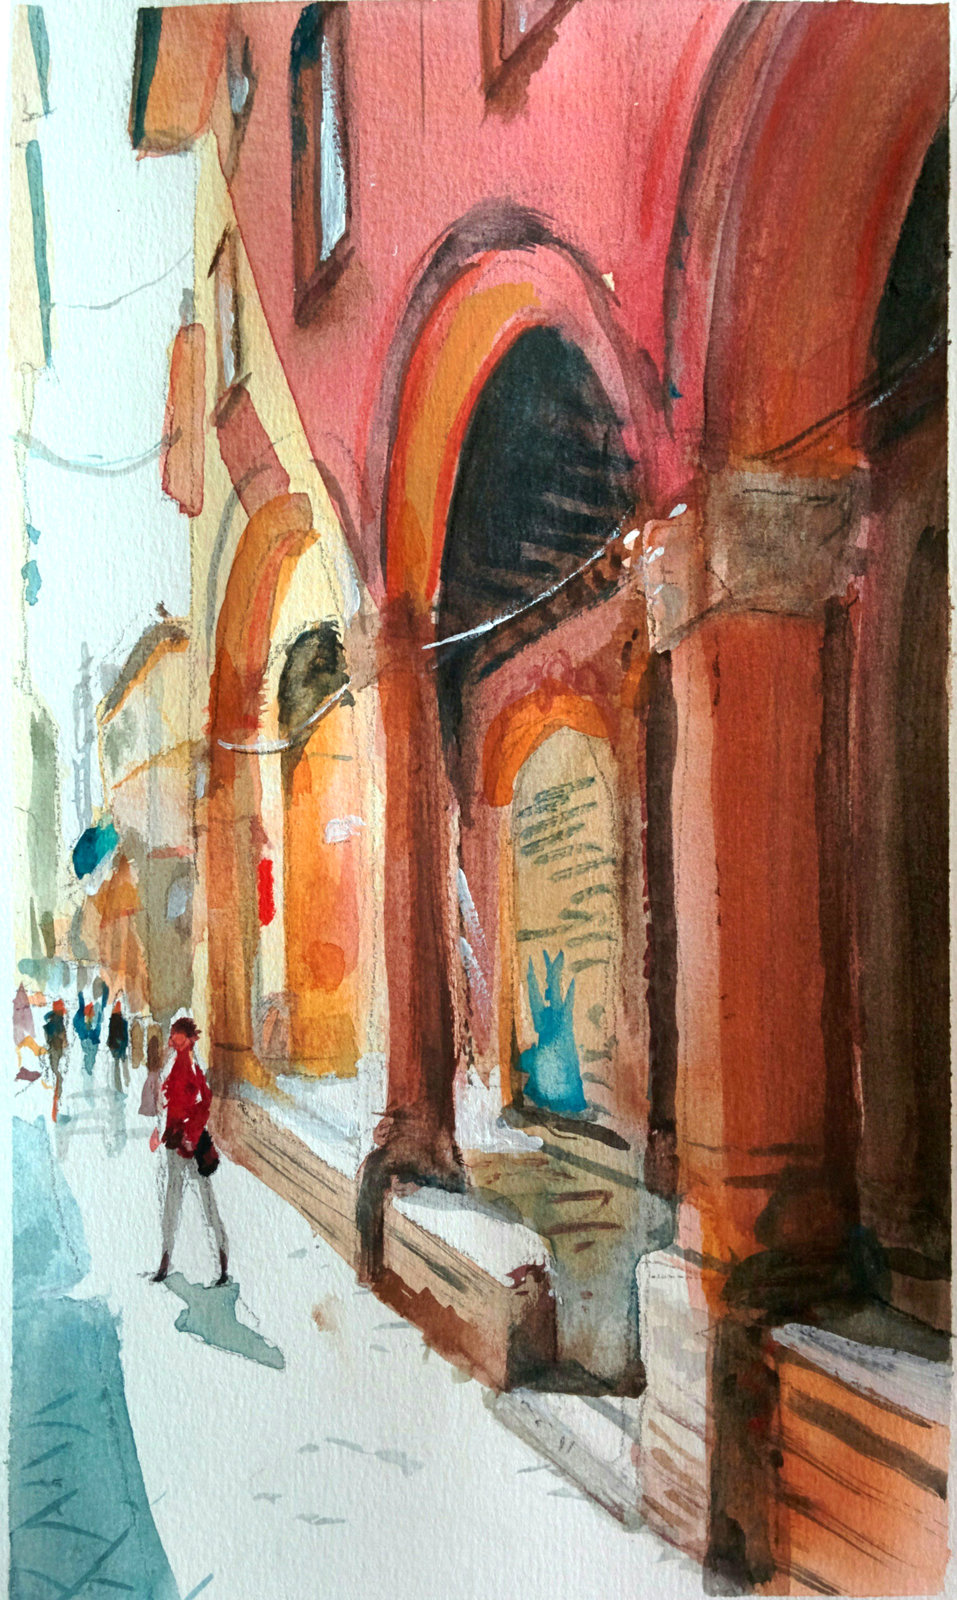 A street in fair Bologna